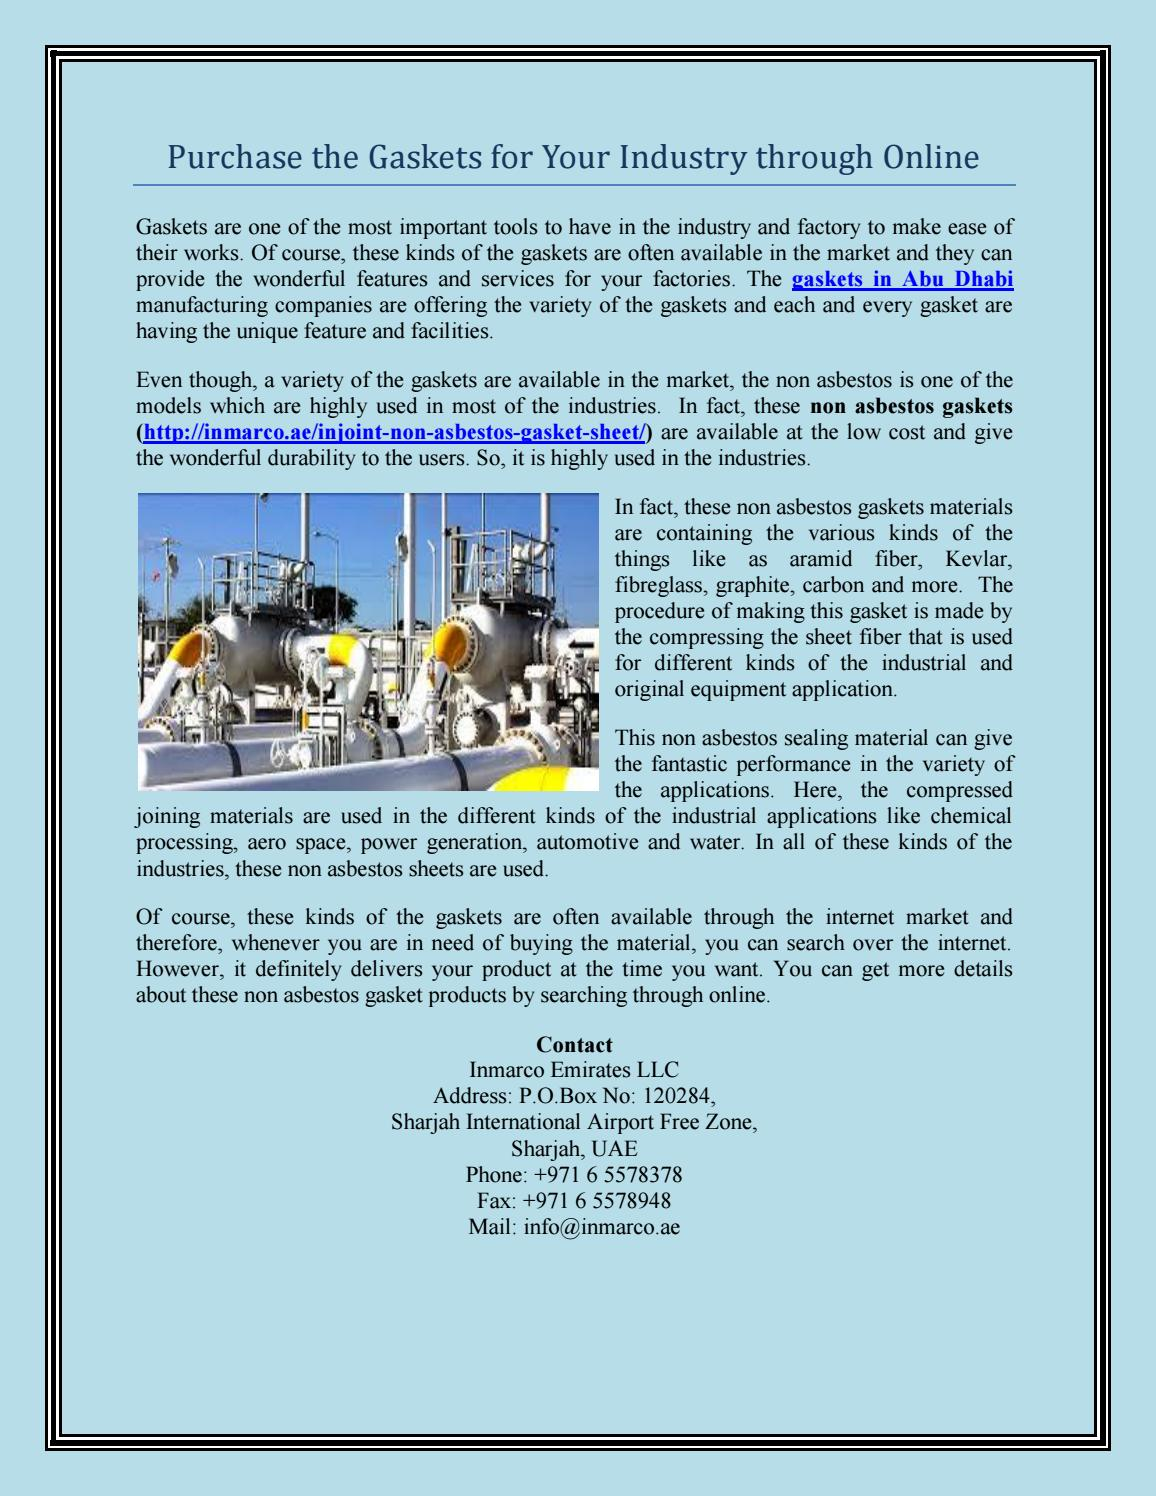 Chemical Companies In Sharjah